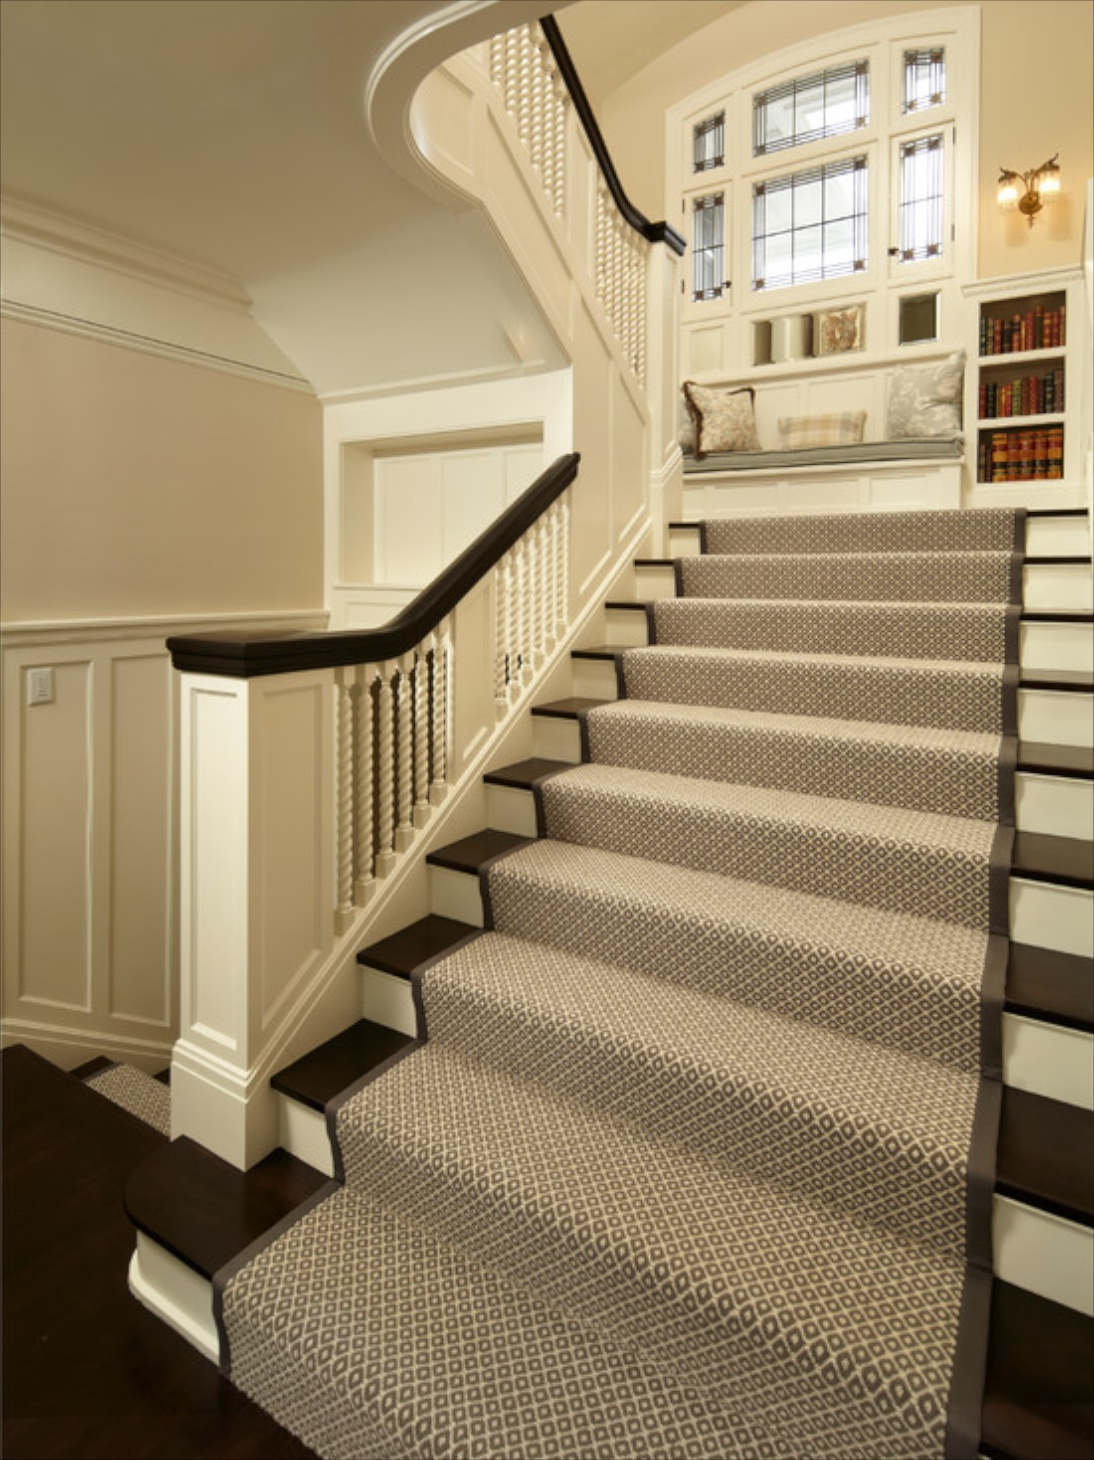 Carpeting stairs carpeting stairs colors WCDPLHS